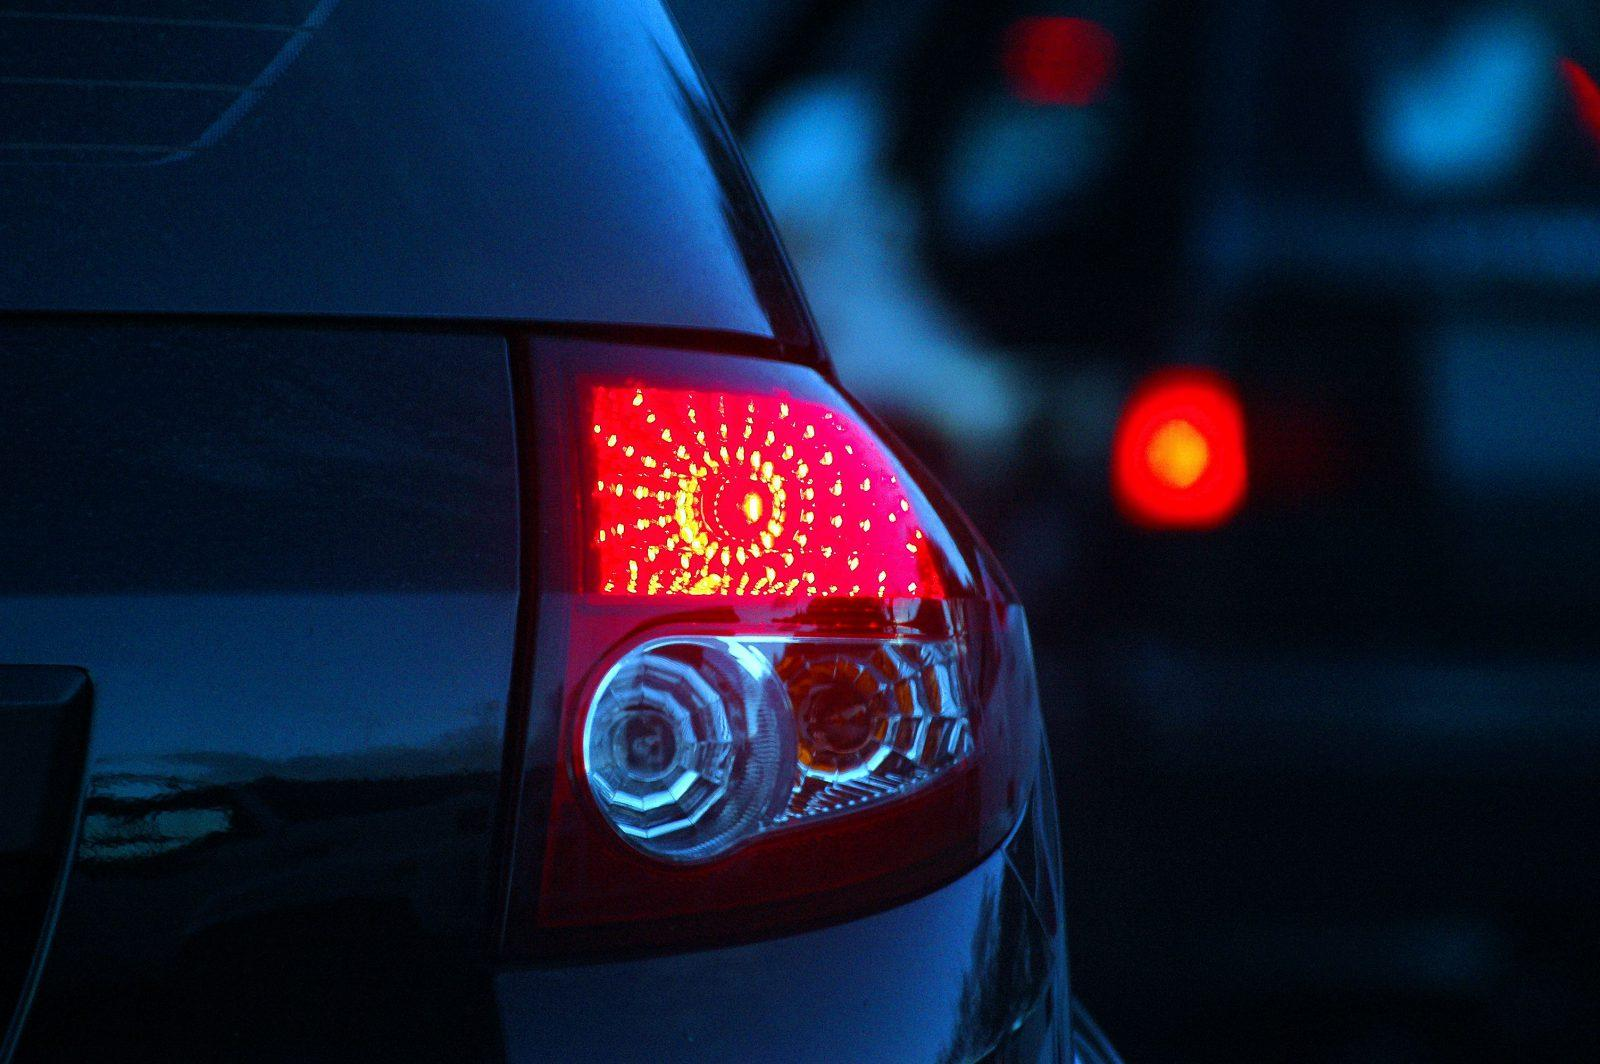 hight resolution of causes of turn signal blinking fast